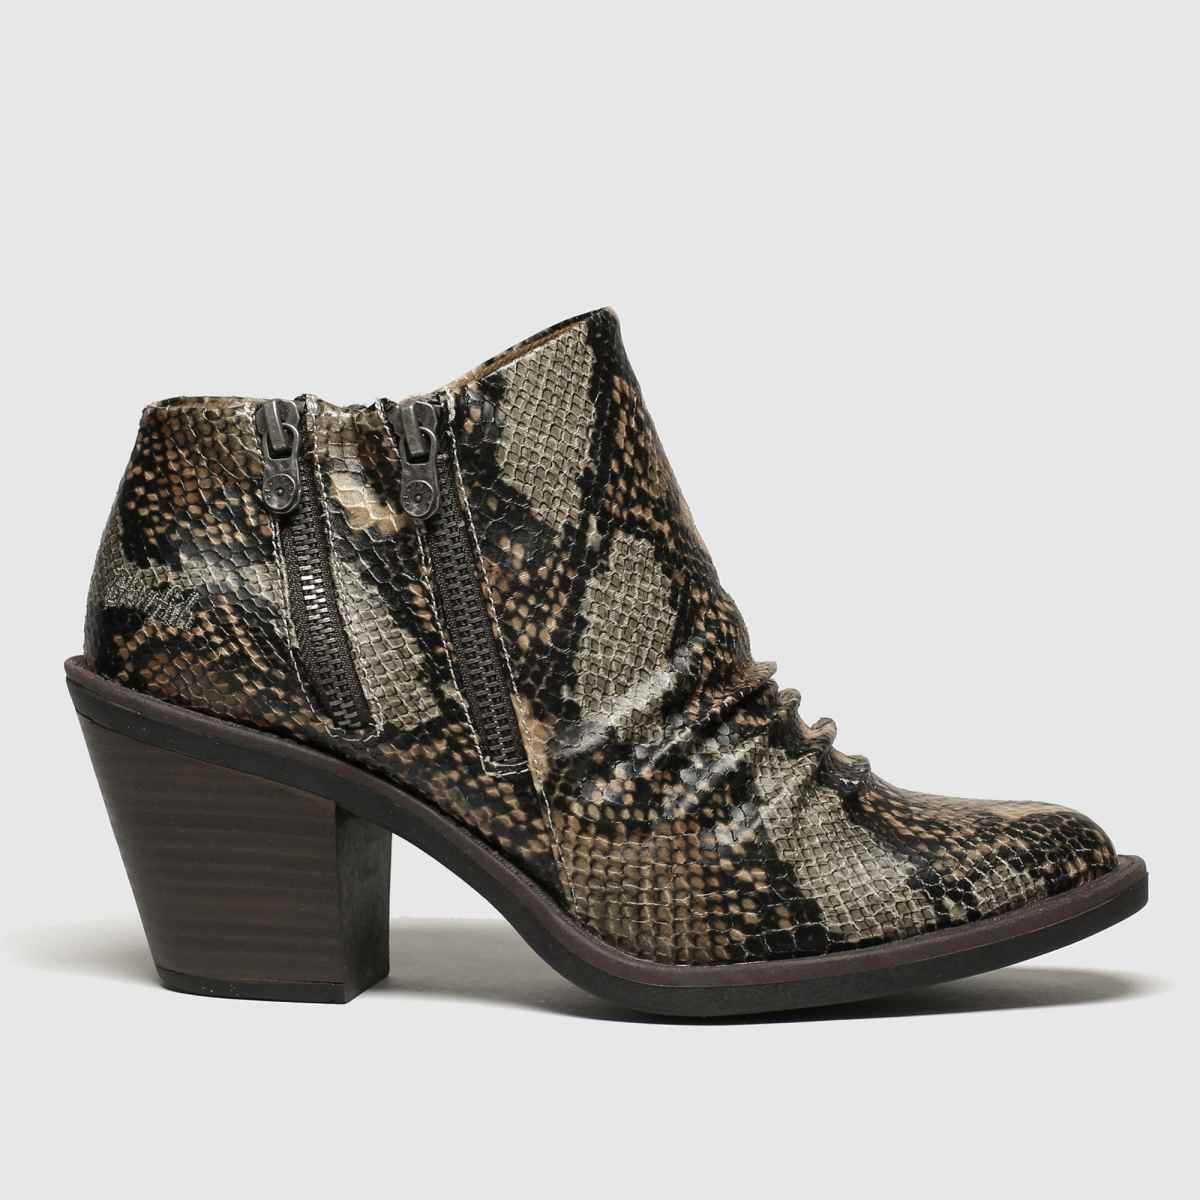 Blowfish Blowfish Brown & Black Lole Vegan Boots